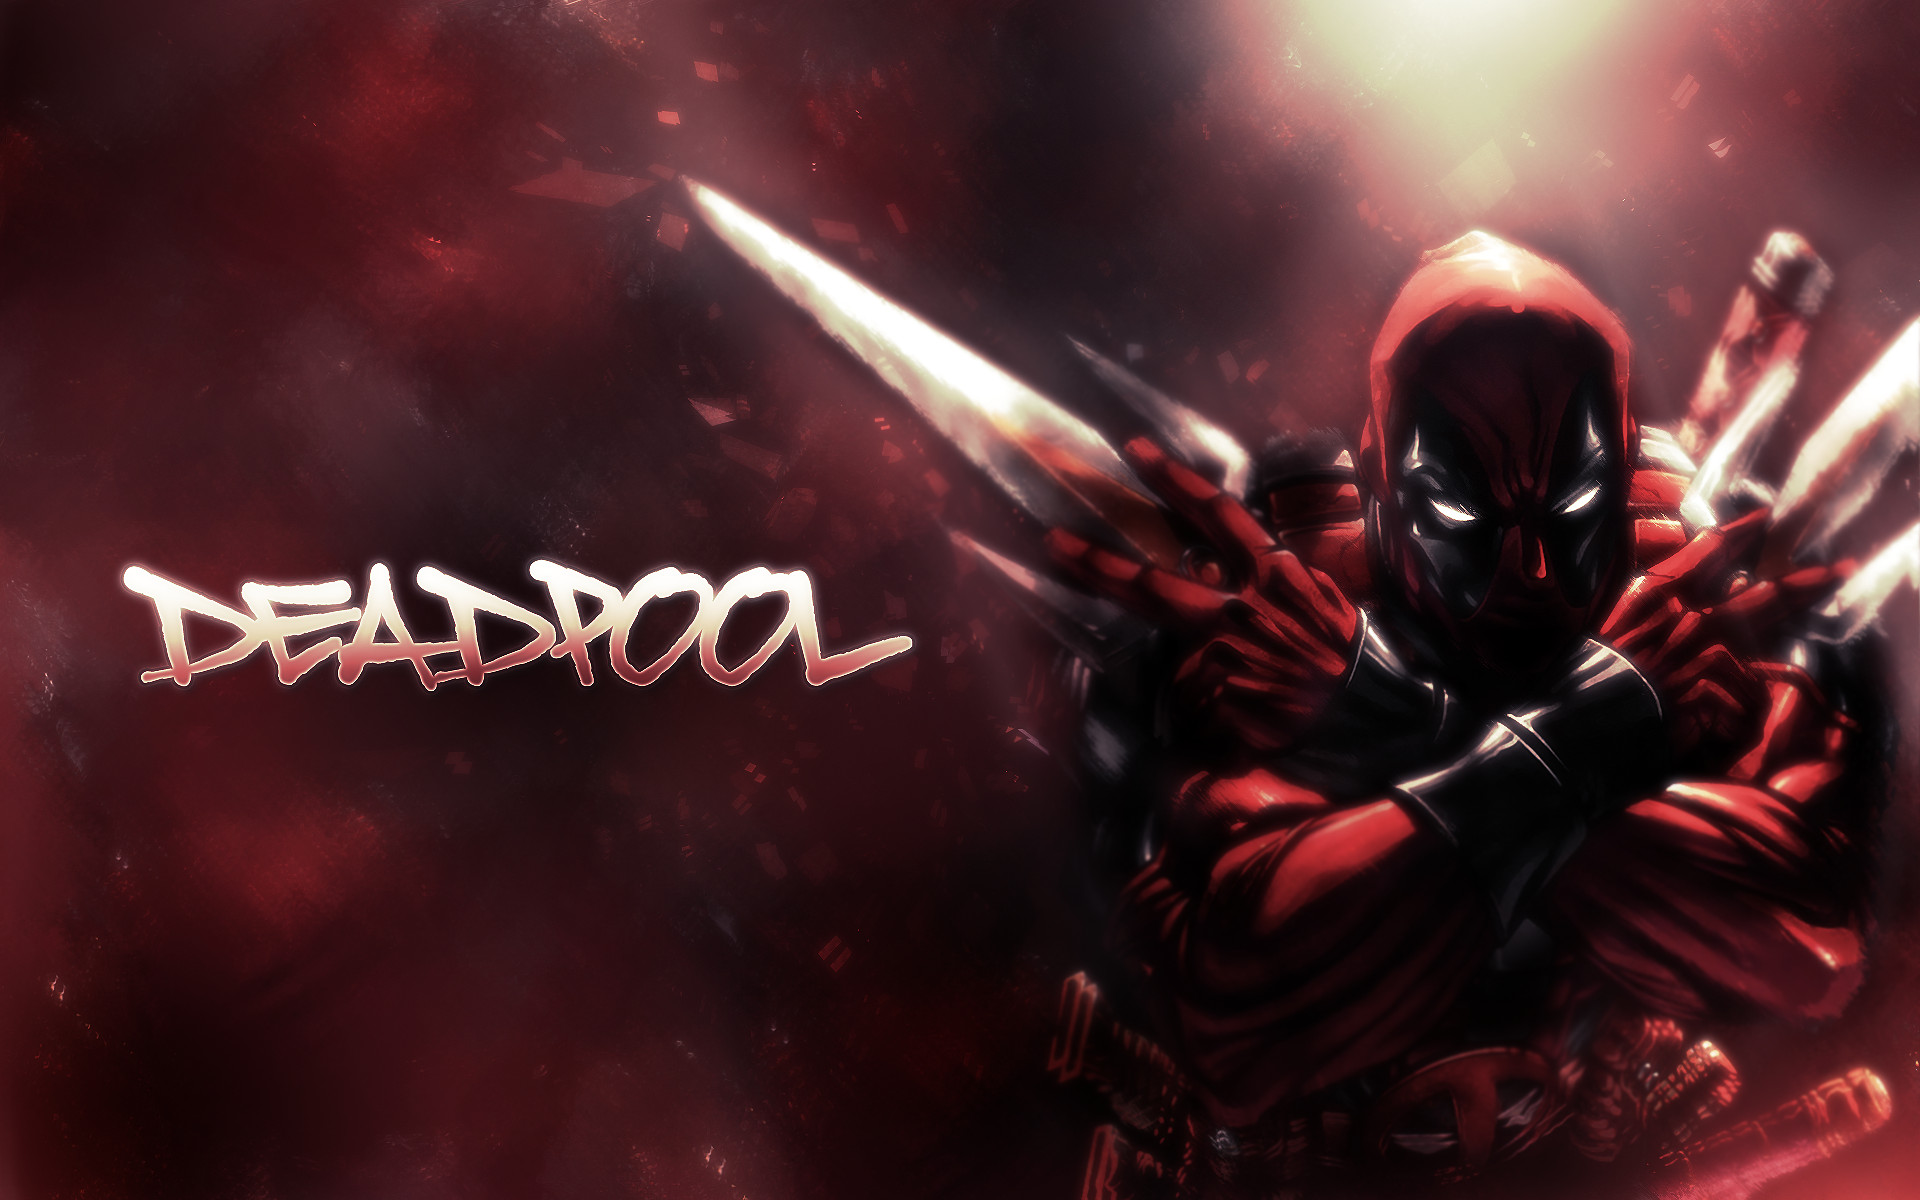 Top Cool Deadpool Wallpaper Images for Pinterest 1920x1200